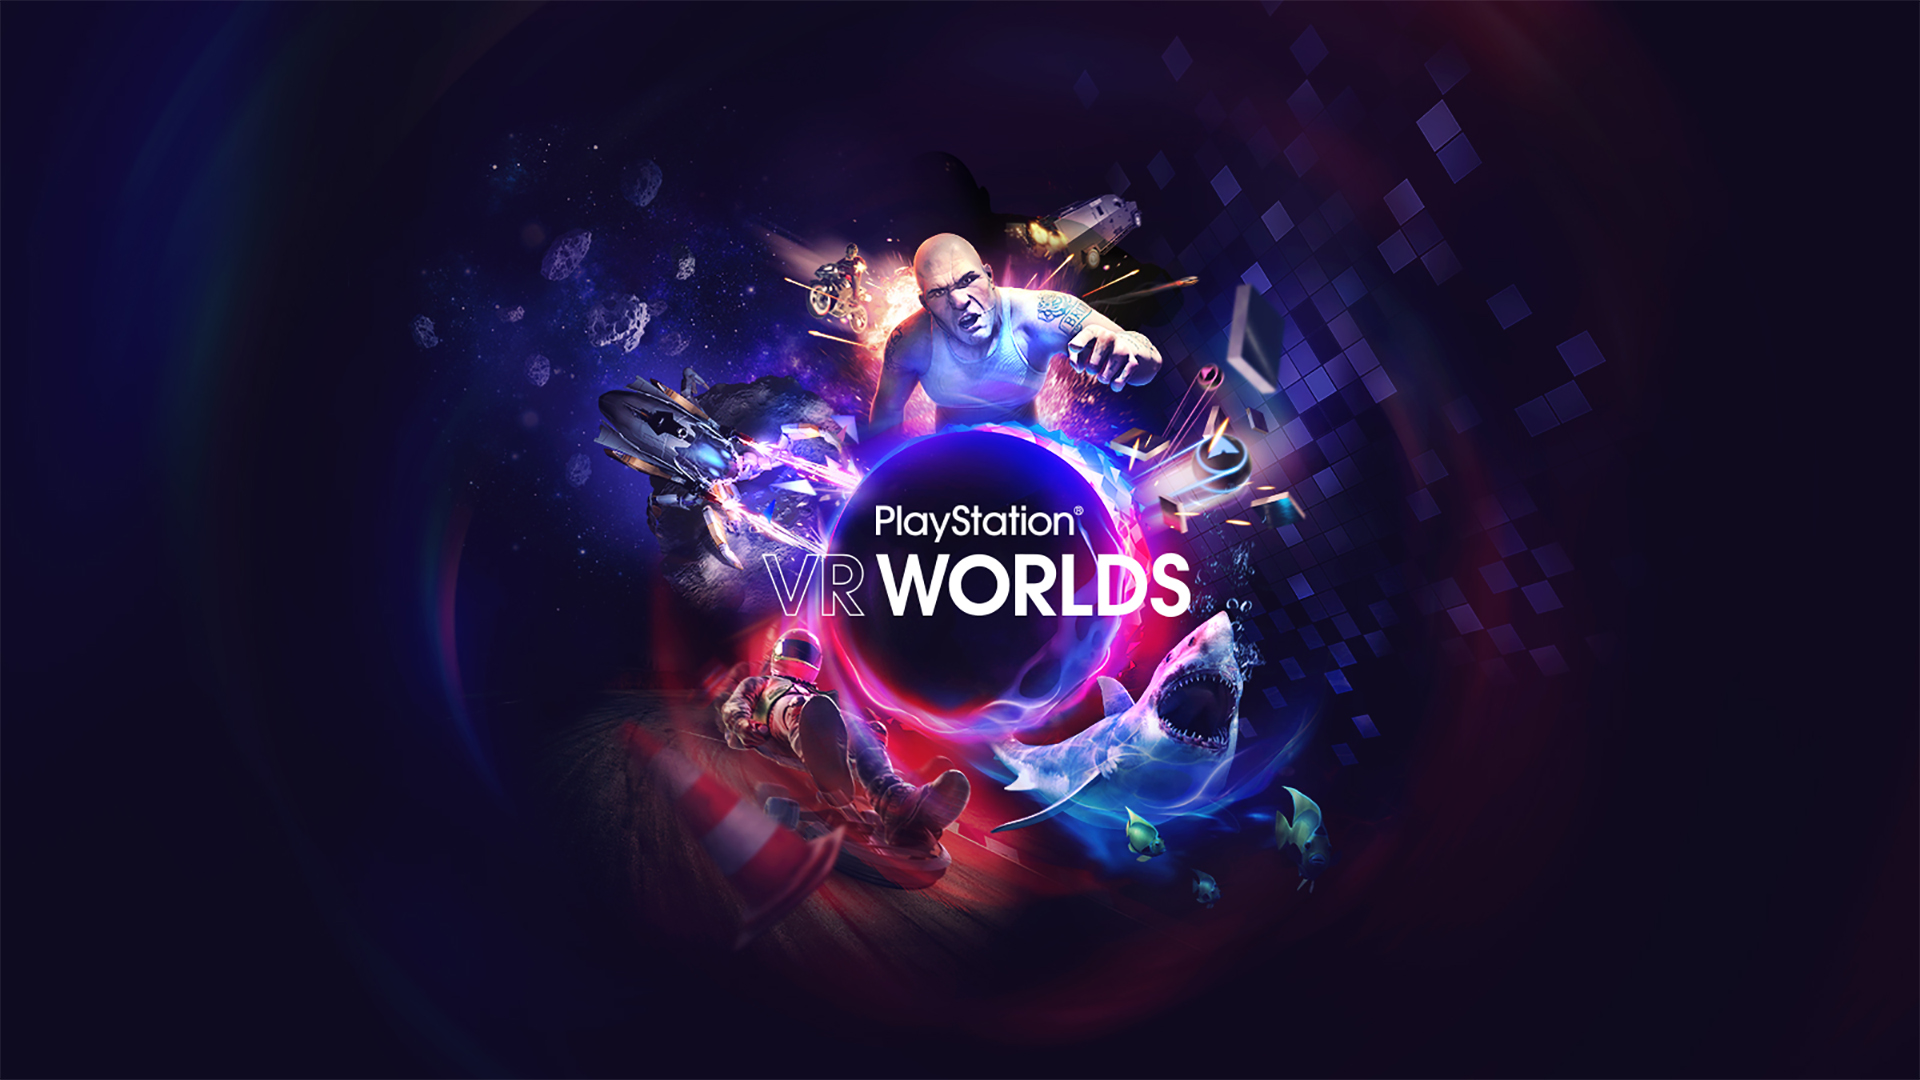 London Studio - PlayStation VR Worlds